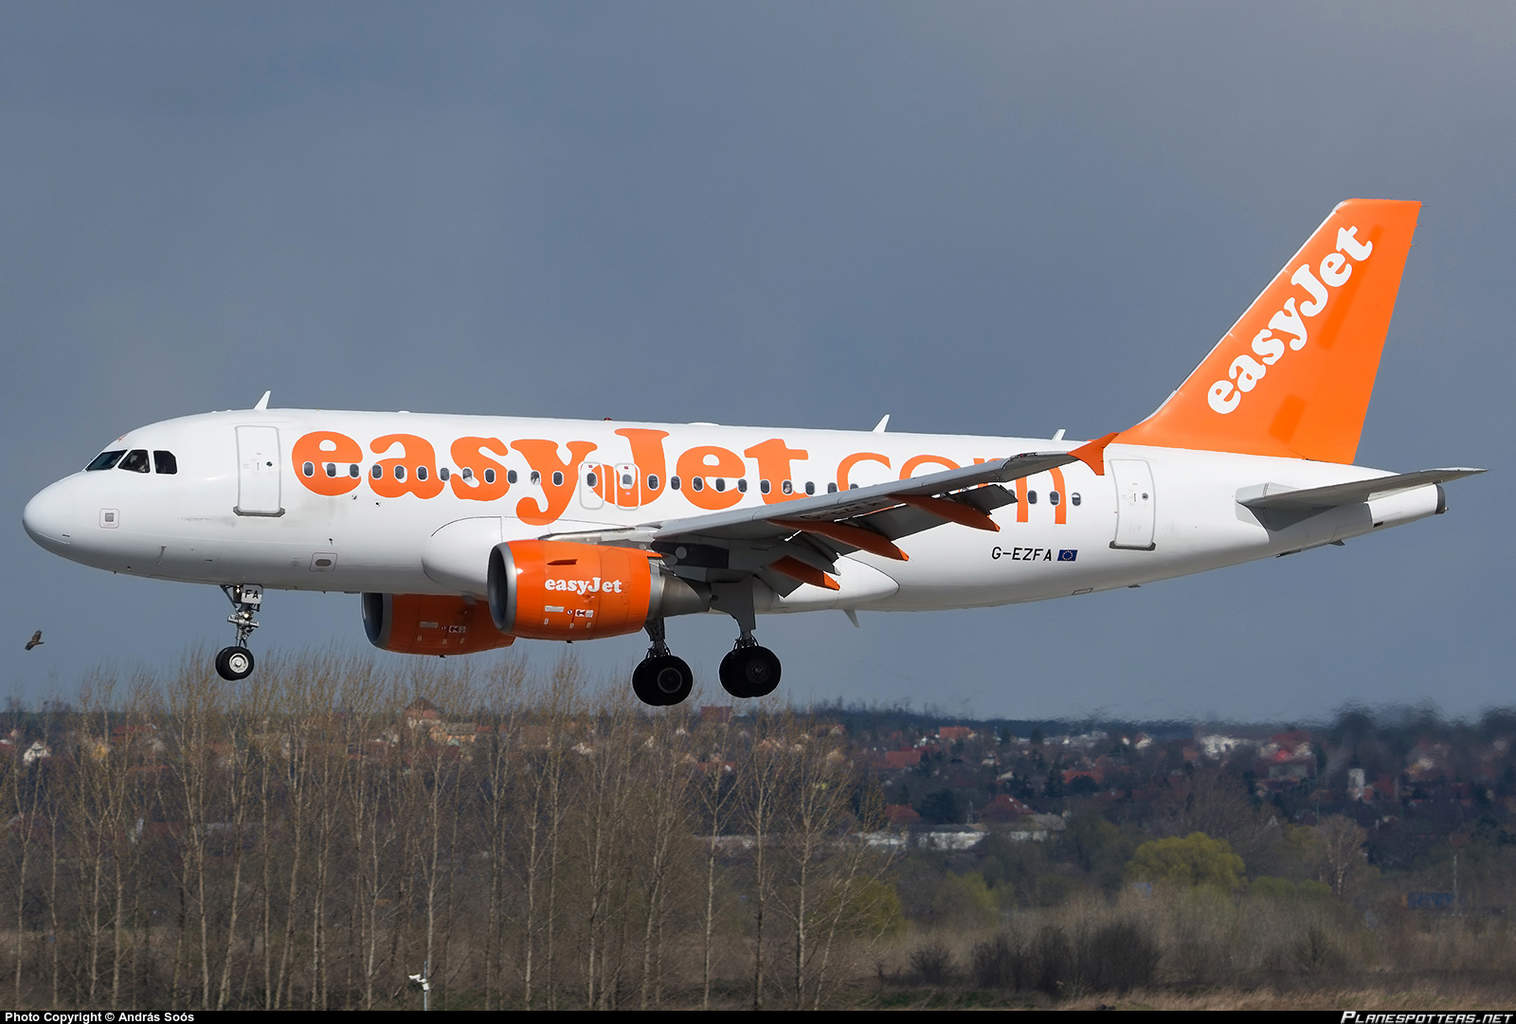 easyJet crew retracts flaps instead of gears